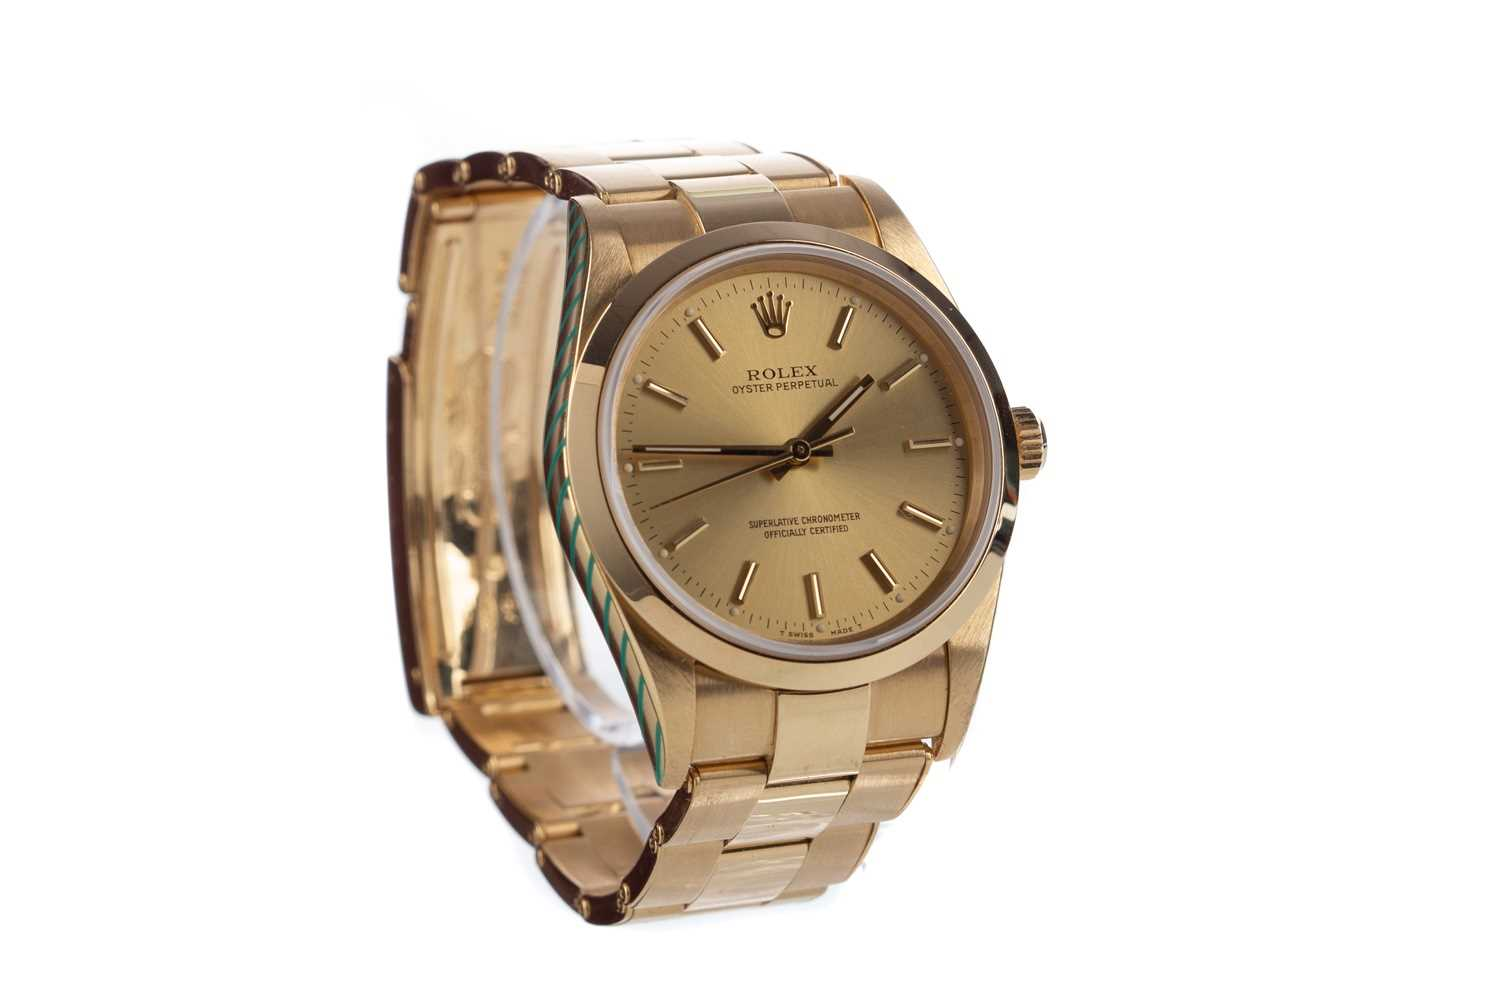 A GENTLEMAN'S ROLEX OYSTER PERPETUAL EIGHTEEN CARAT GOLD AUTOMATIC WRIST WATCH - Image 2 of 9